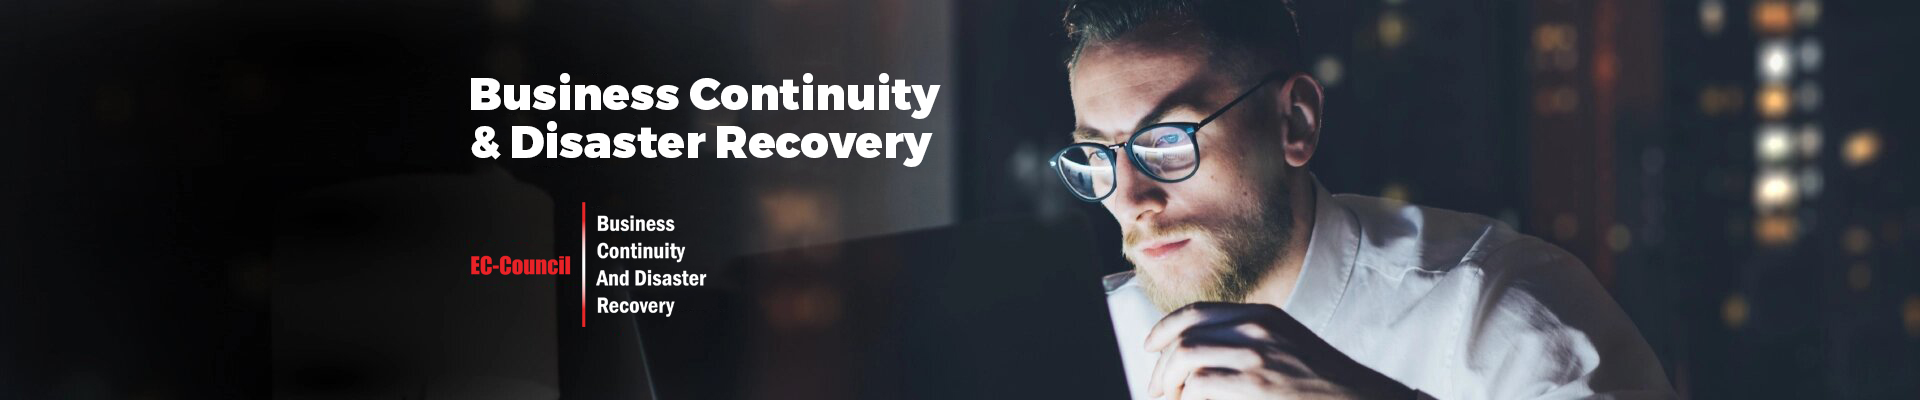 Disaster Recovery Professional | EDRP